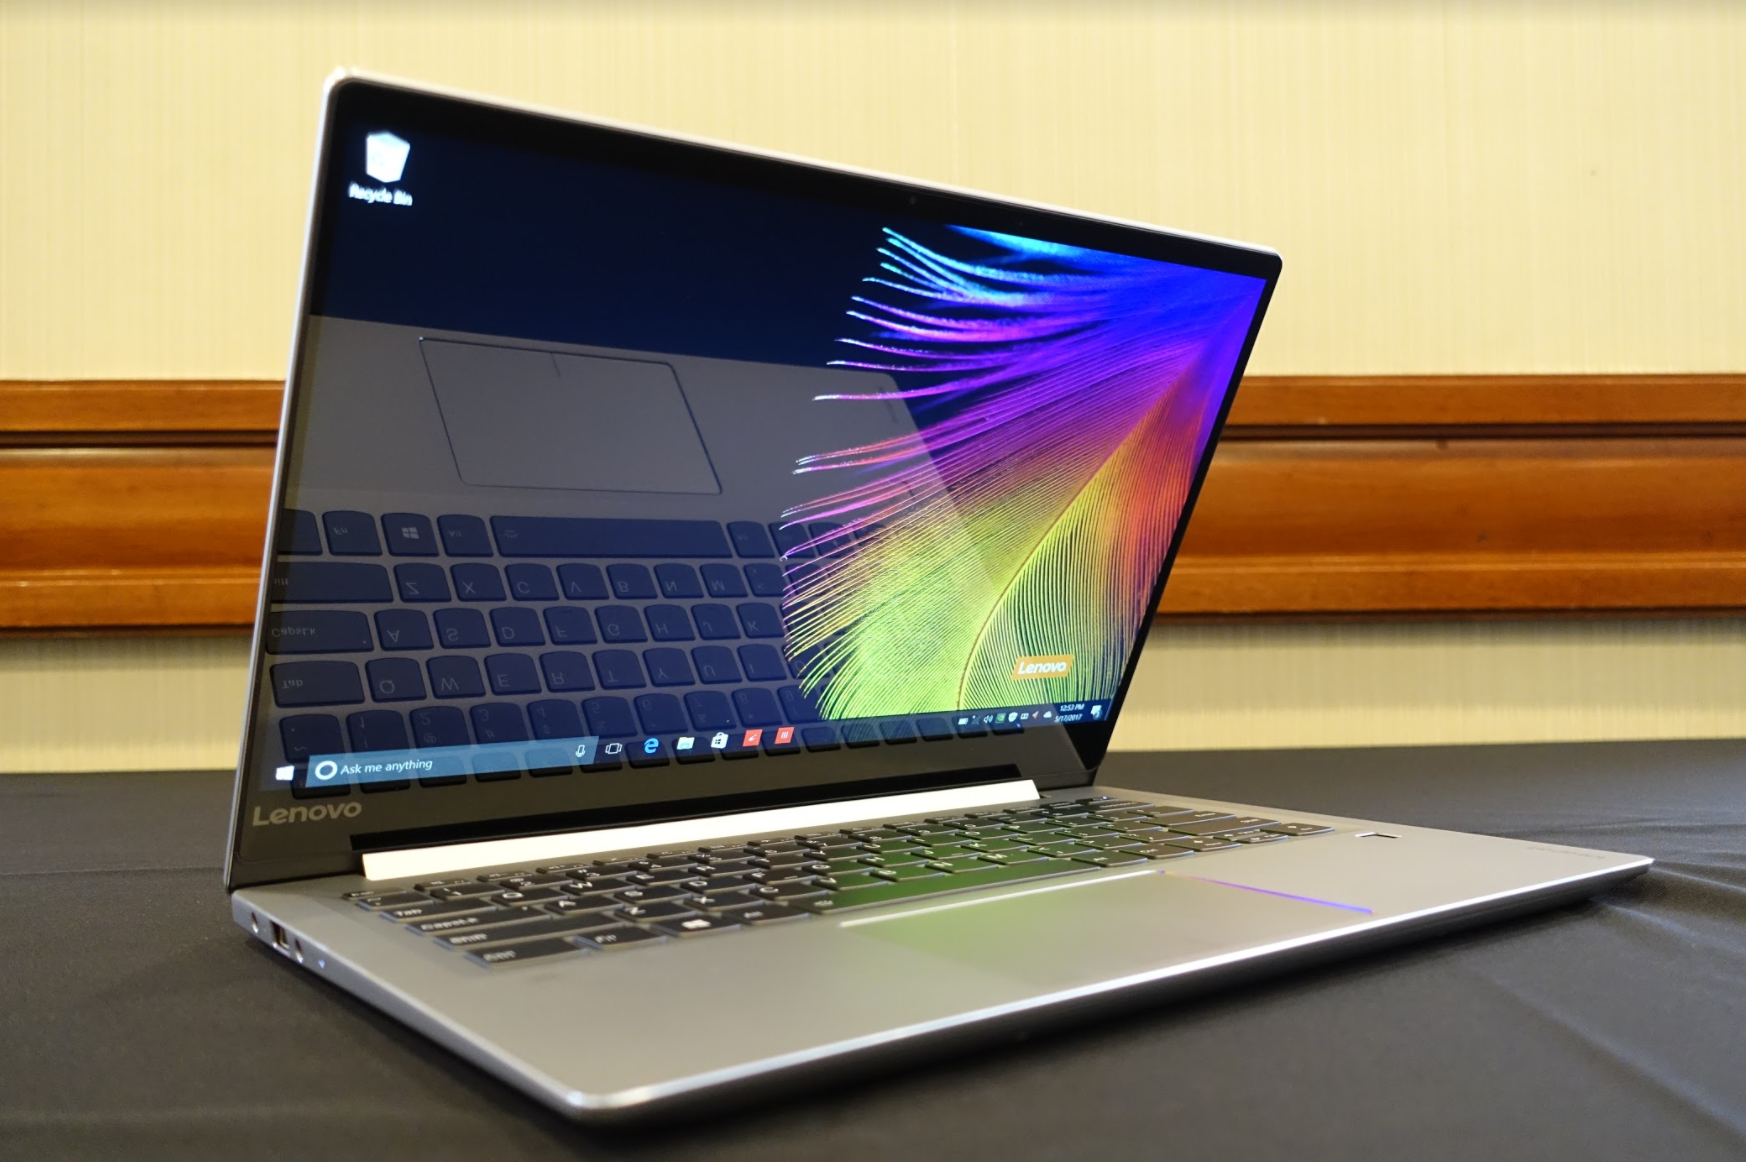 Hands On with the Completely Redesigned Lenovo IdeaPad Lineup